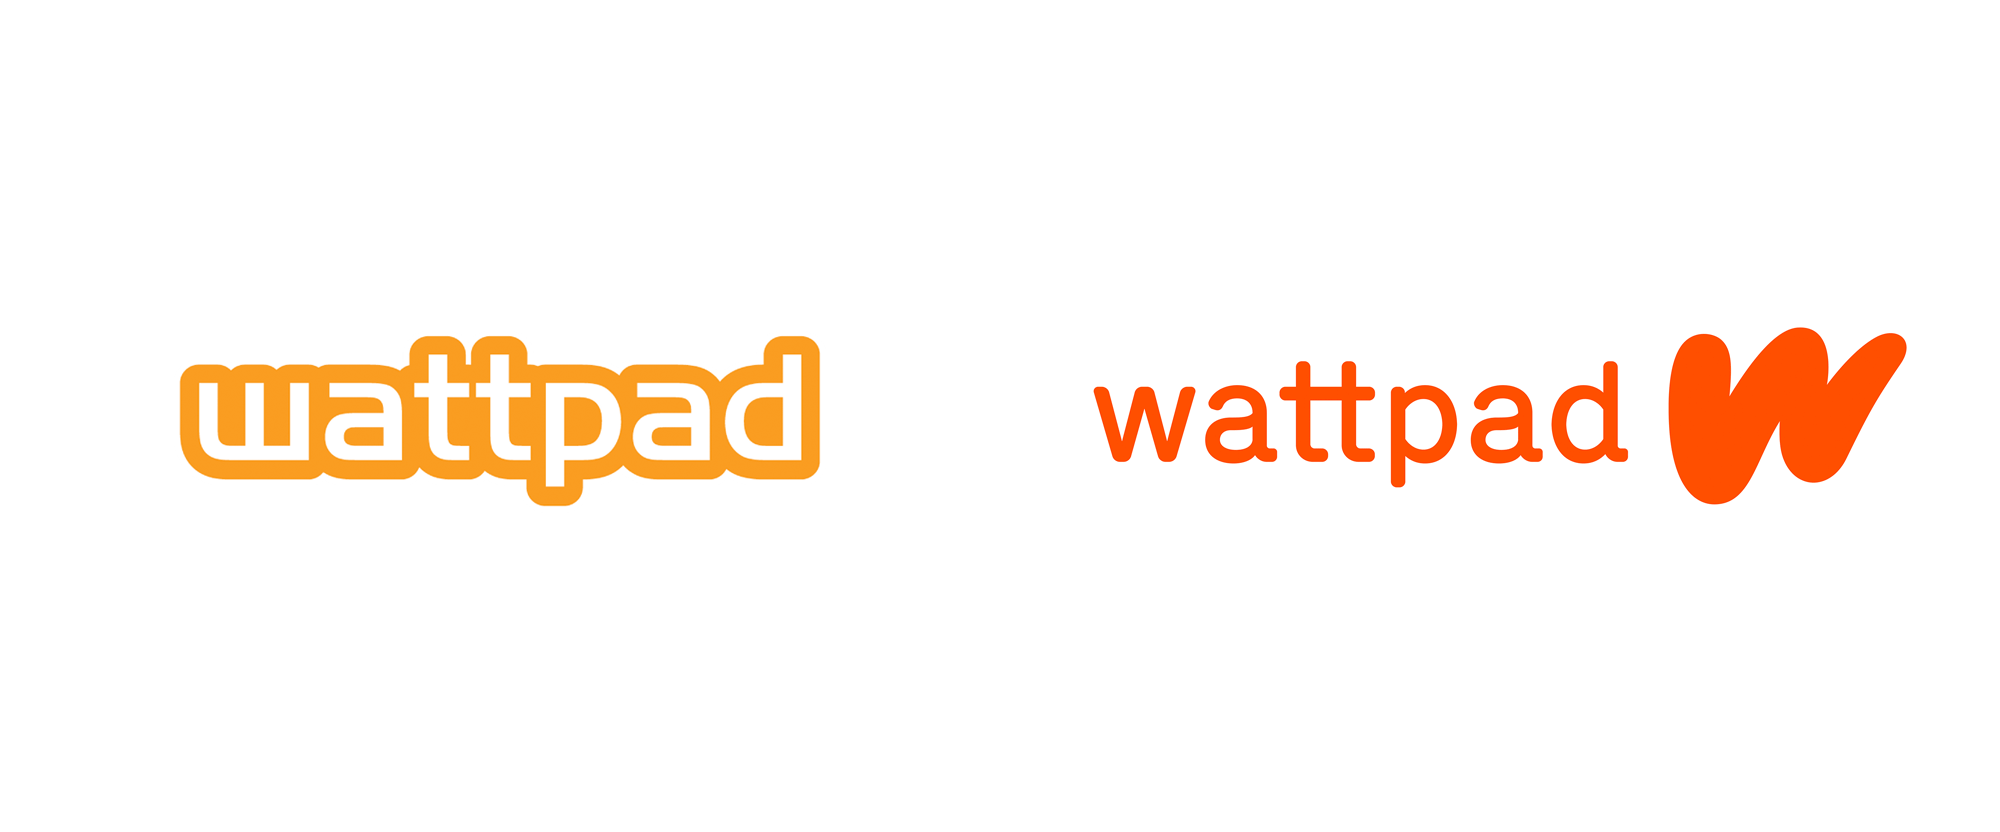 New Logo and Identity for Wattpad